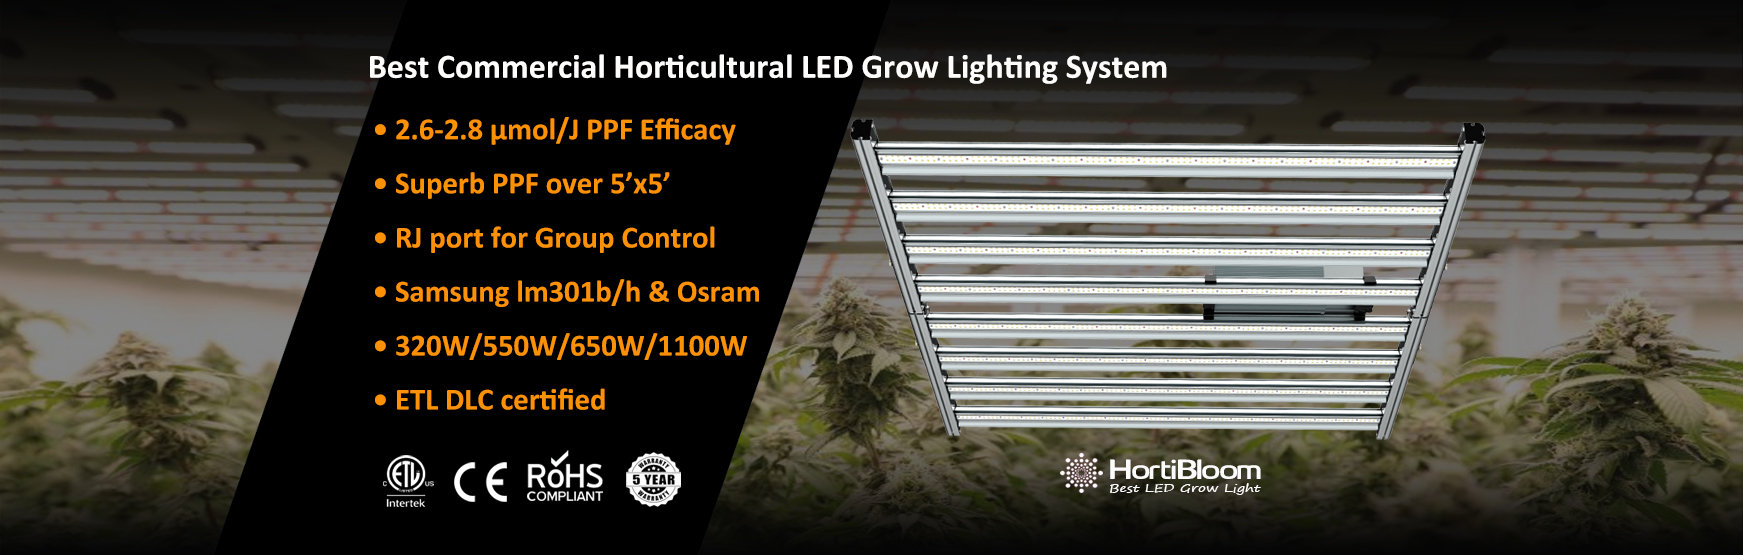 hortibloom horticulture mega plus led gr